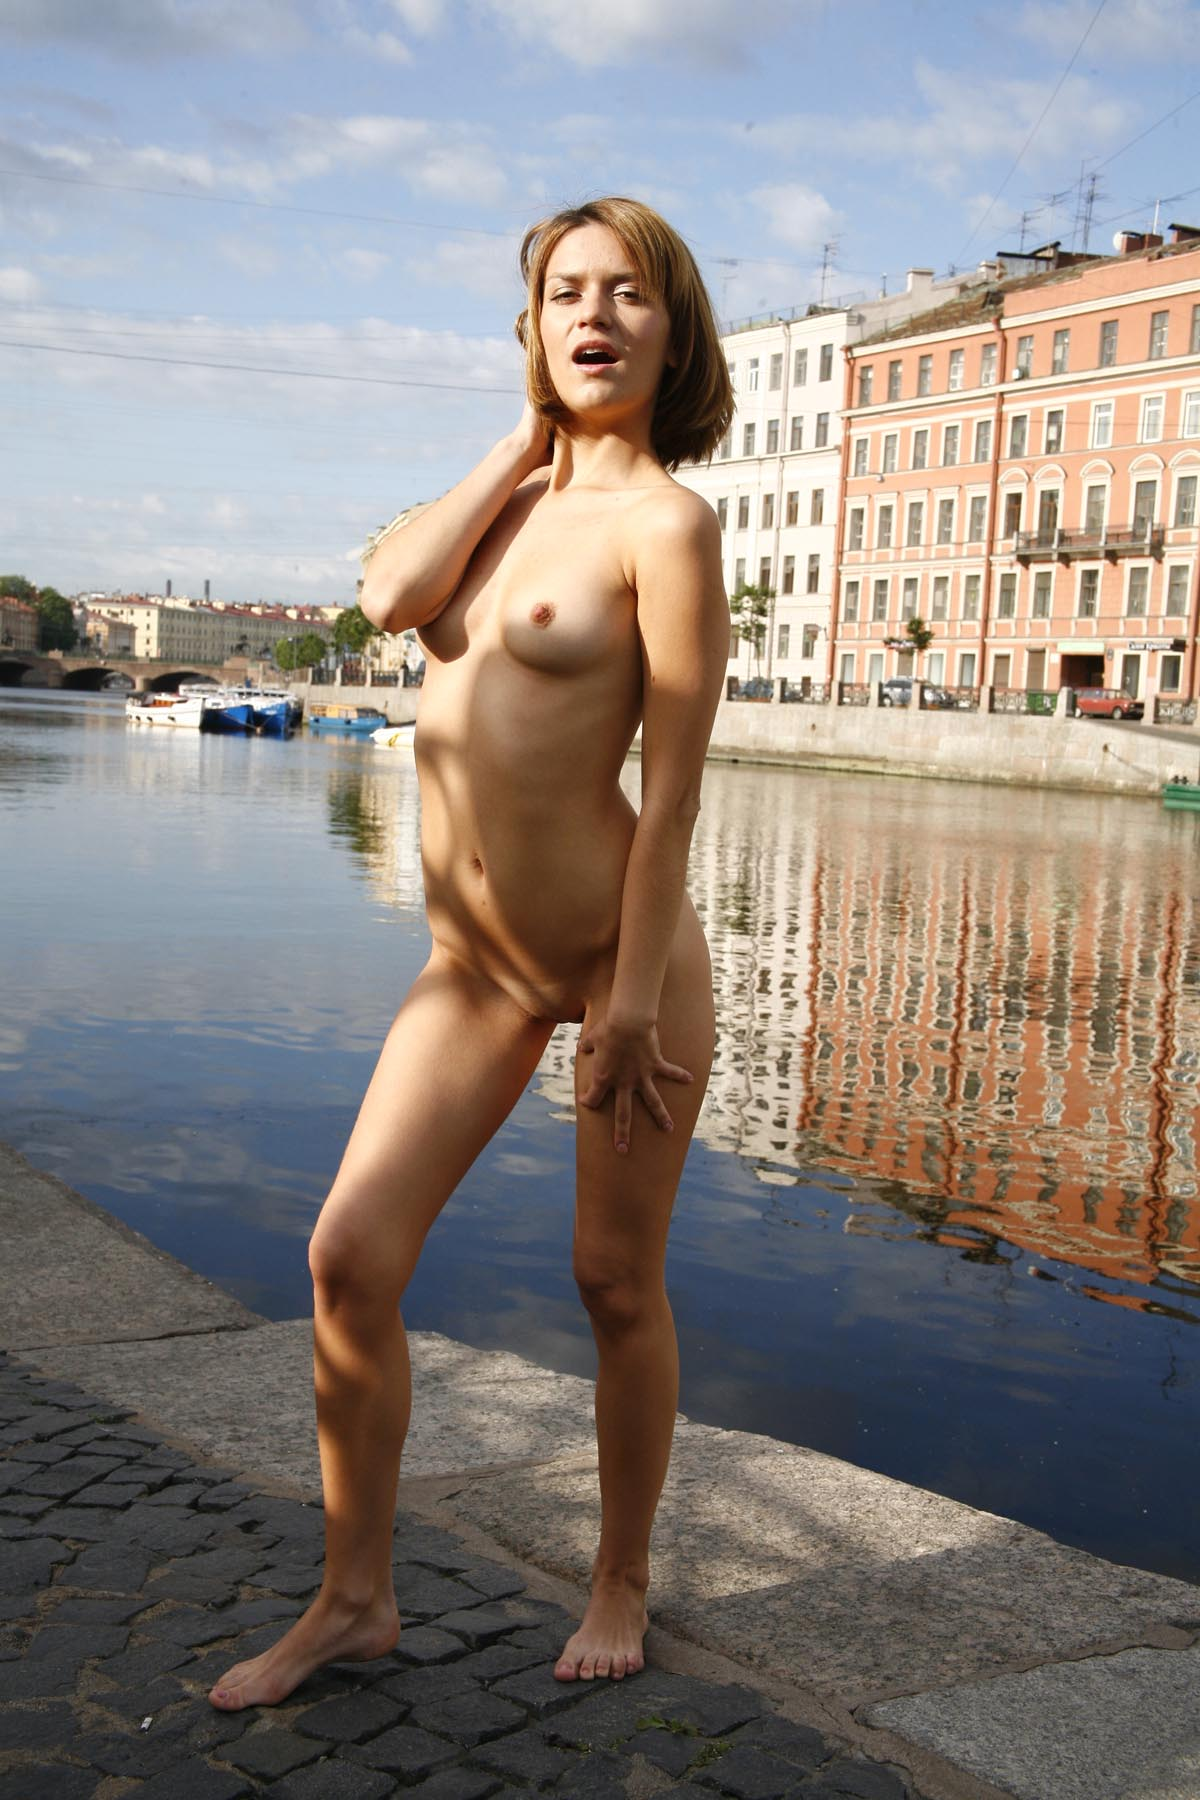 Crazy Russian Girl Exposes Her Naked Body At Pubic -5037